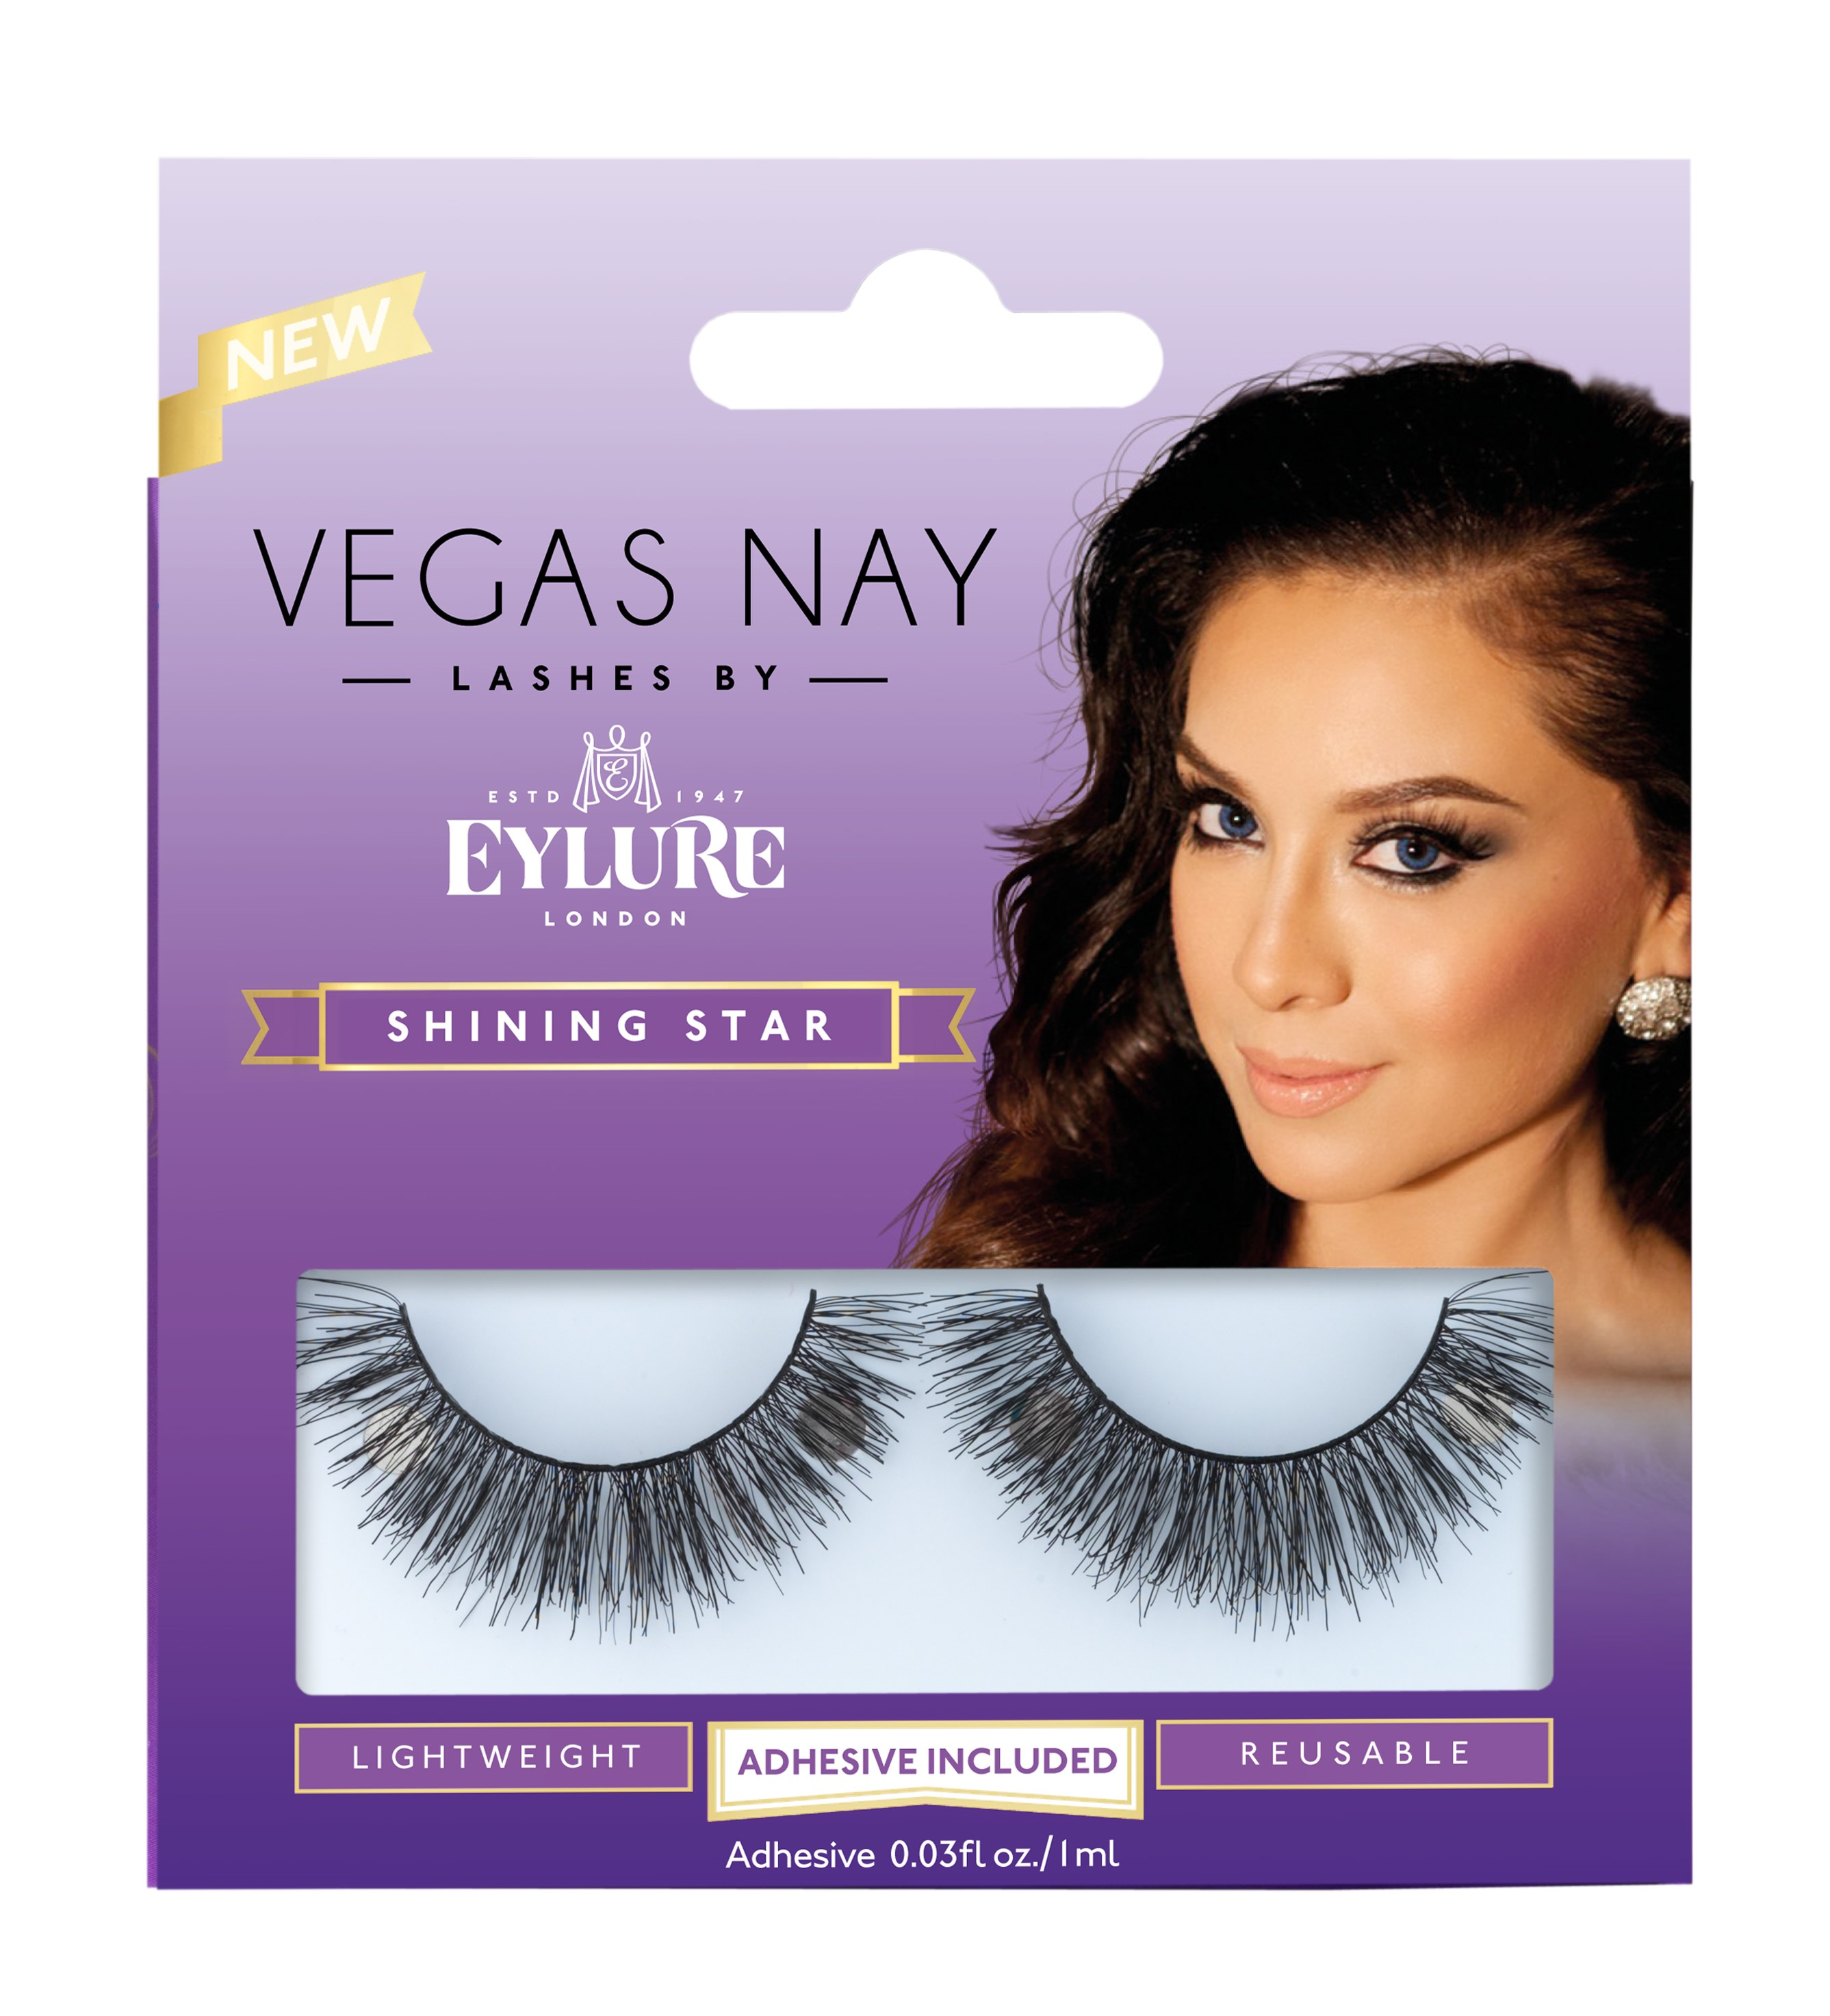 Vegas Nay by Eylure Shining Star Eyelashes Kit, 2 pc